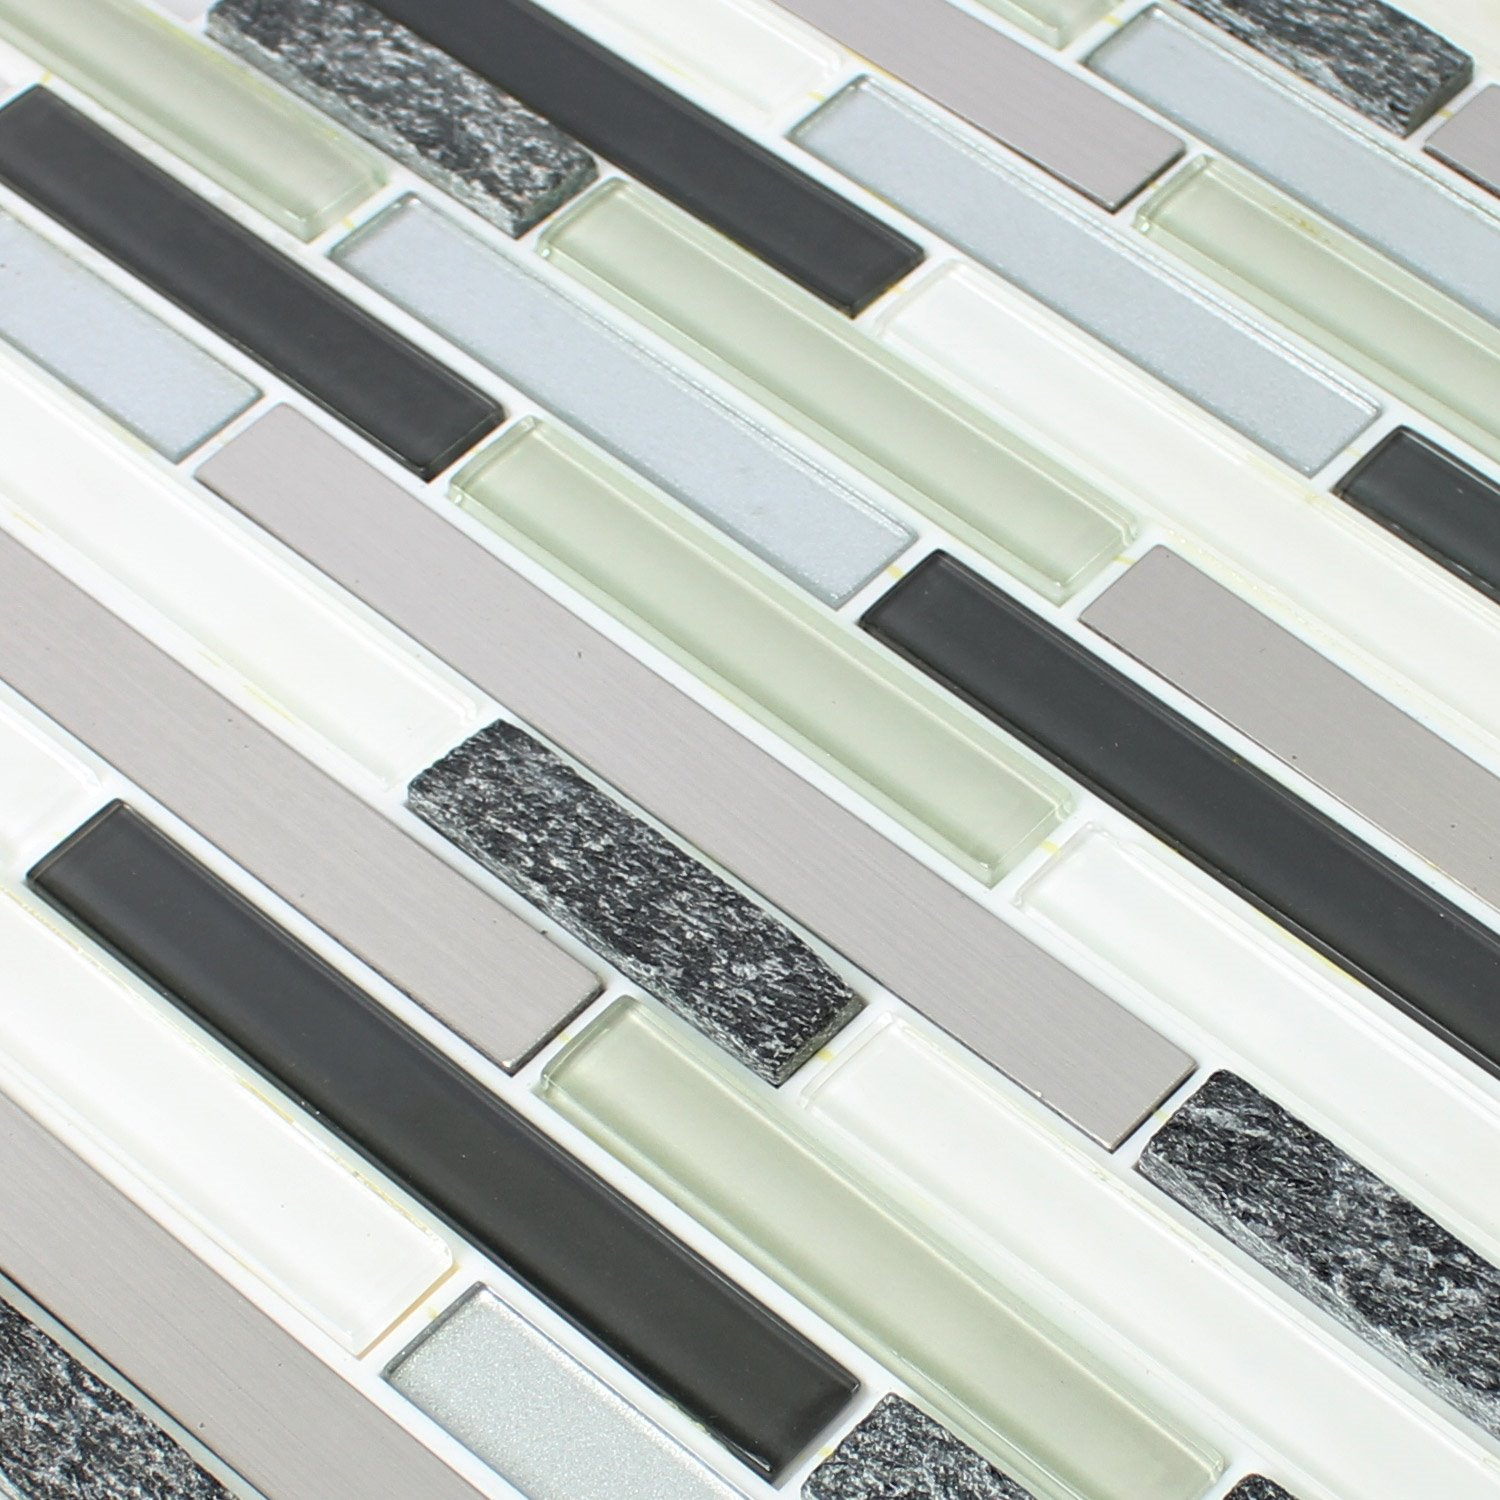 Self Adhesive Glass Backsplash Tiles Adhesive Tile